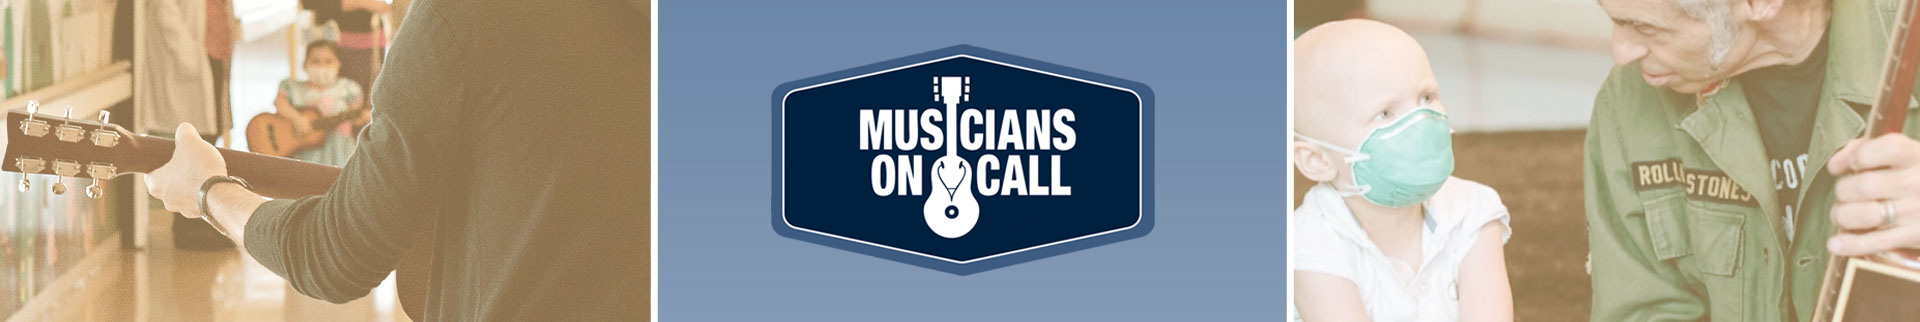 Musicians On Call logo